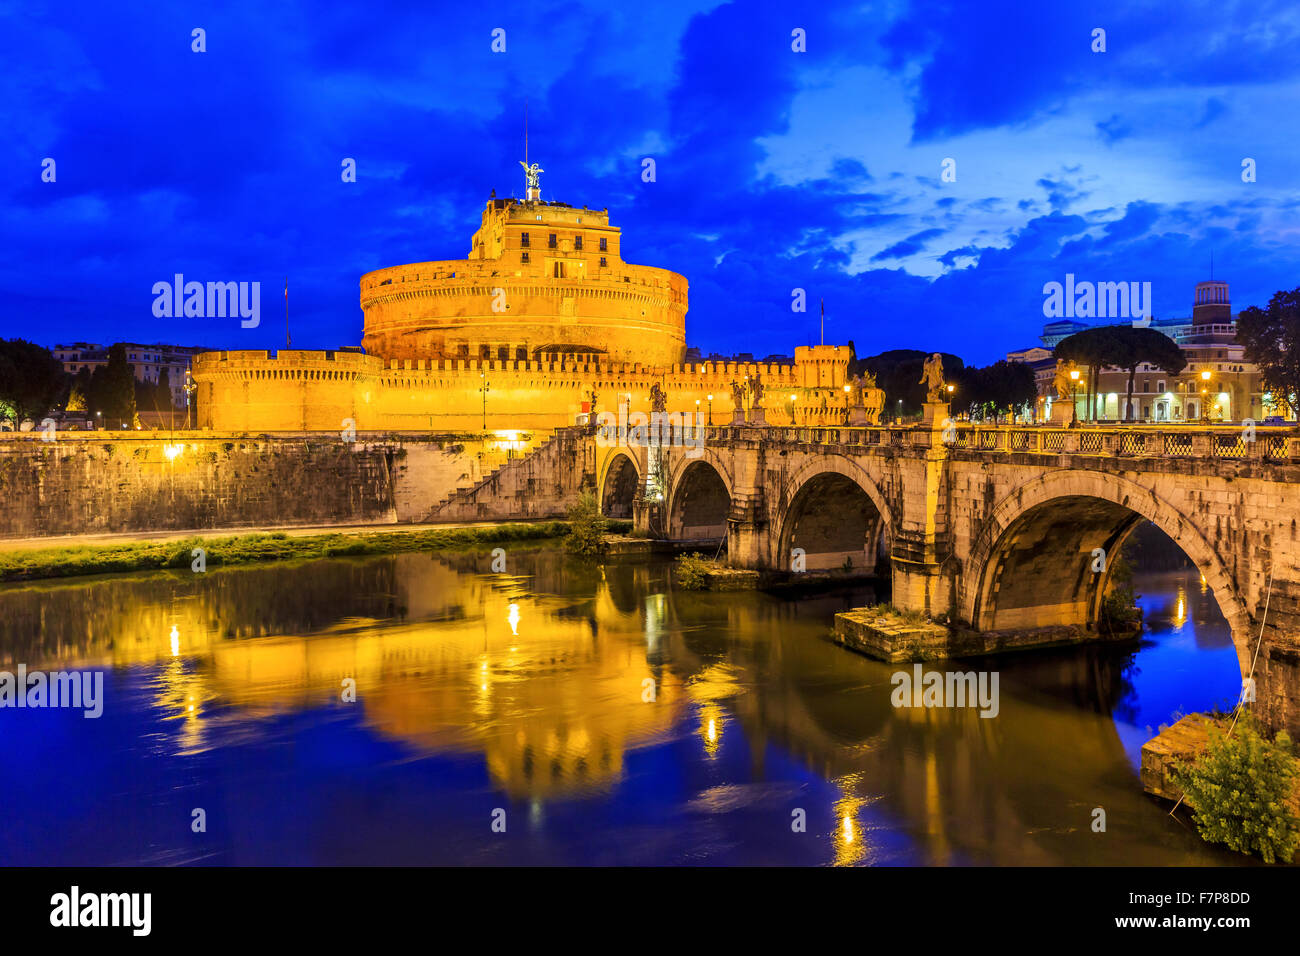 Rome, Italy. Bridge, Castel Sant Angelo and Tiber River at twilight. - Stock Image